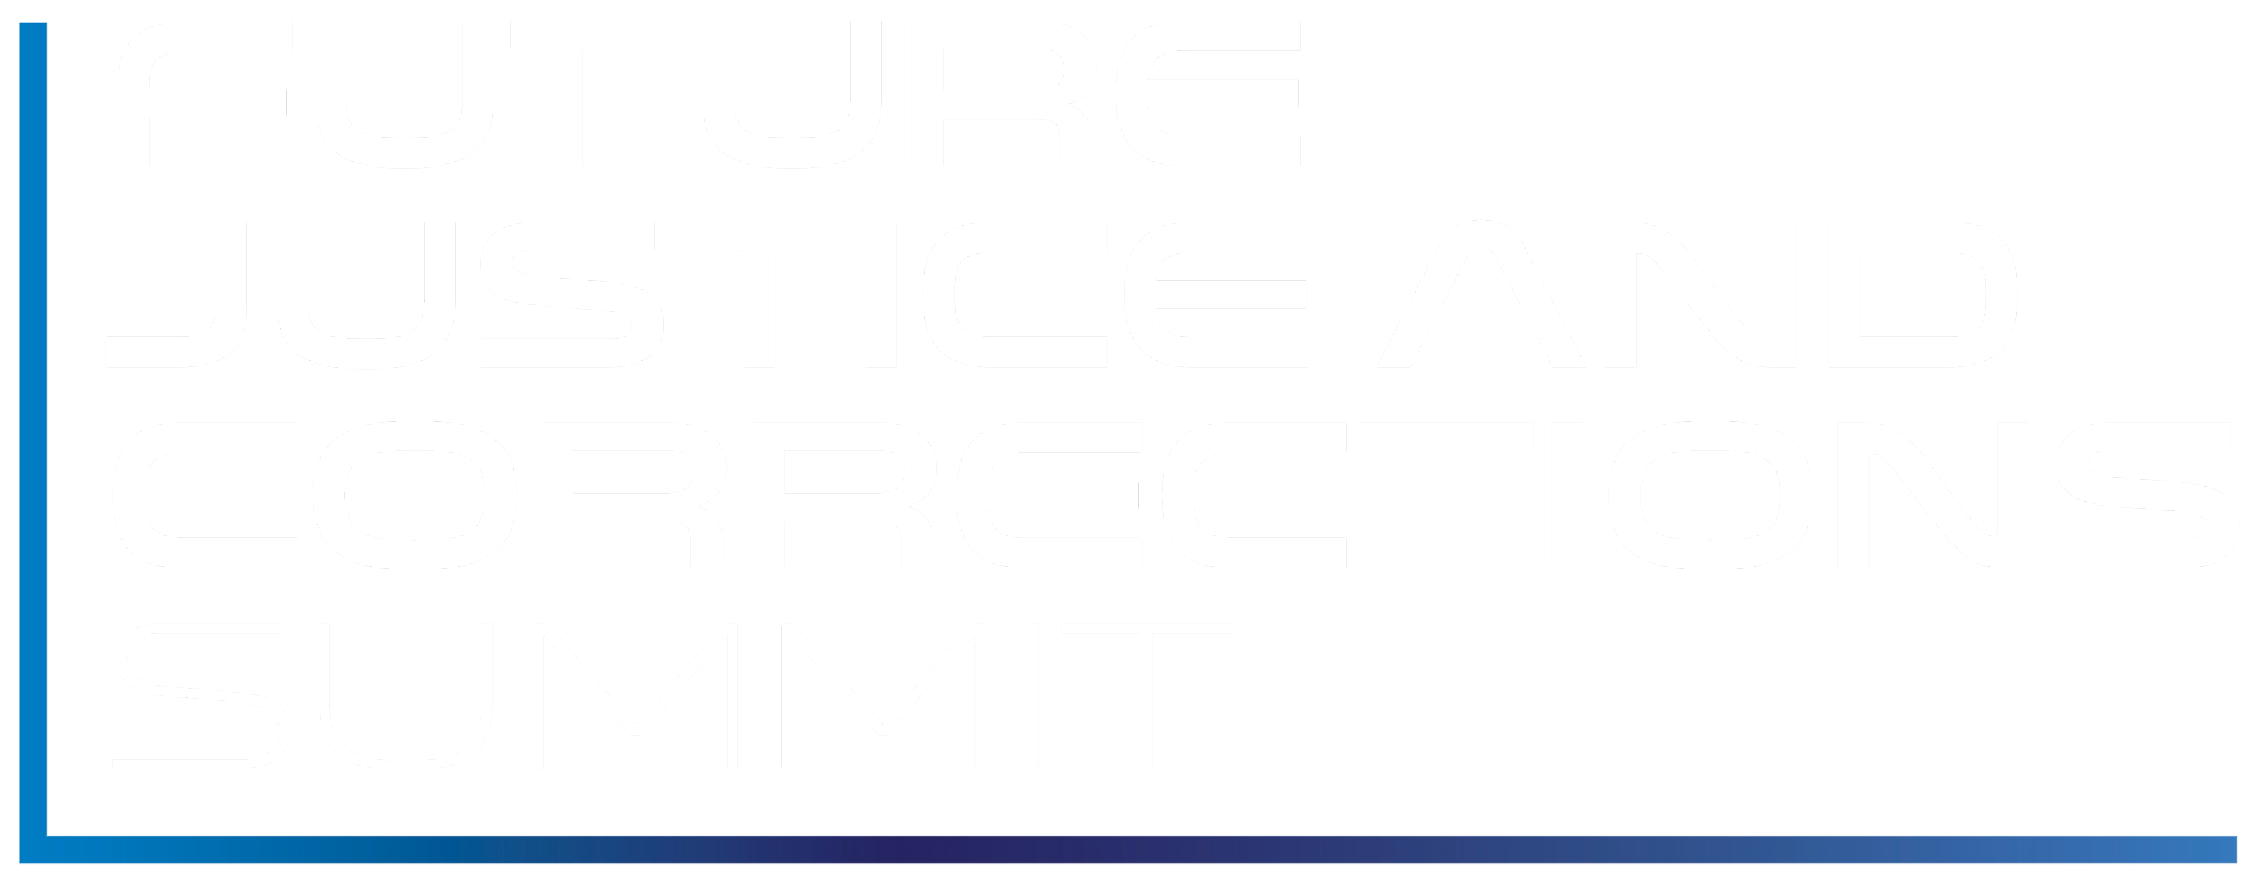 6th Annual Future Justice & Corrections Summit Australia 2020